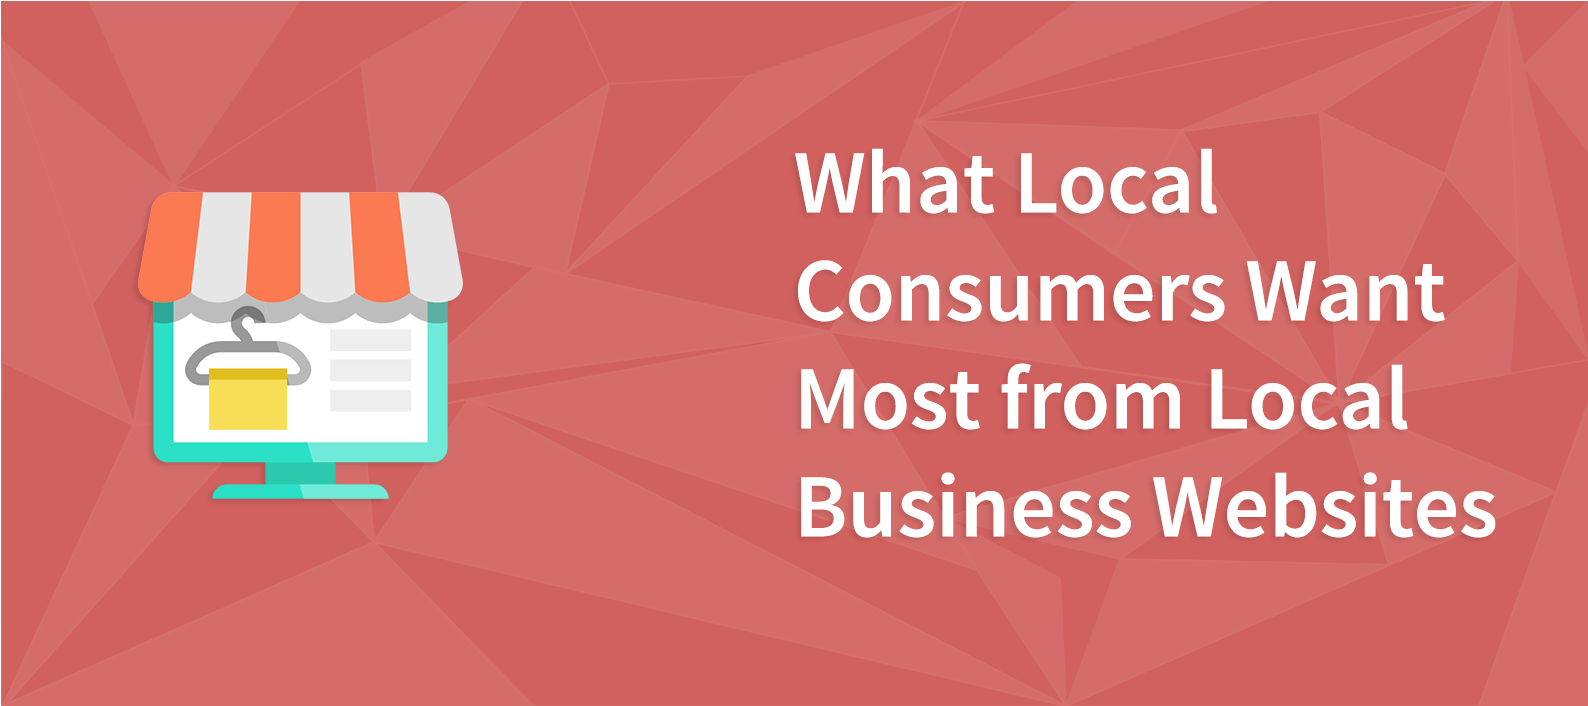 What Local Consumers Want Most from Local Business Websites